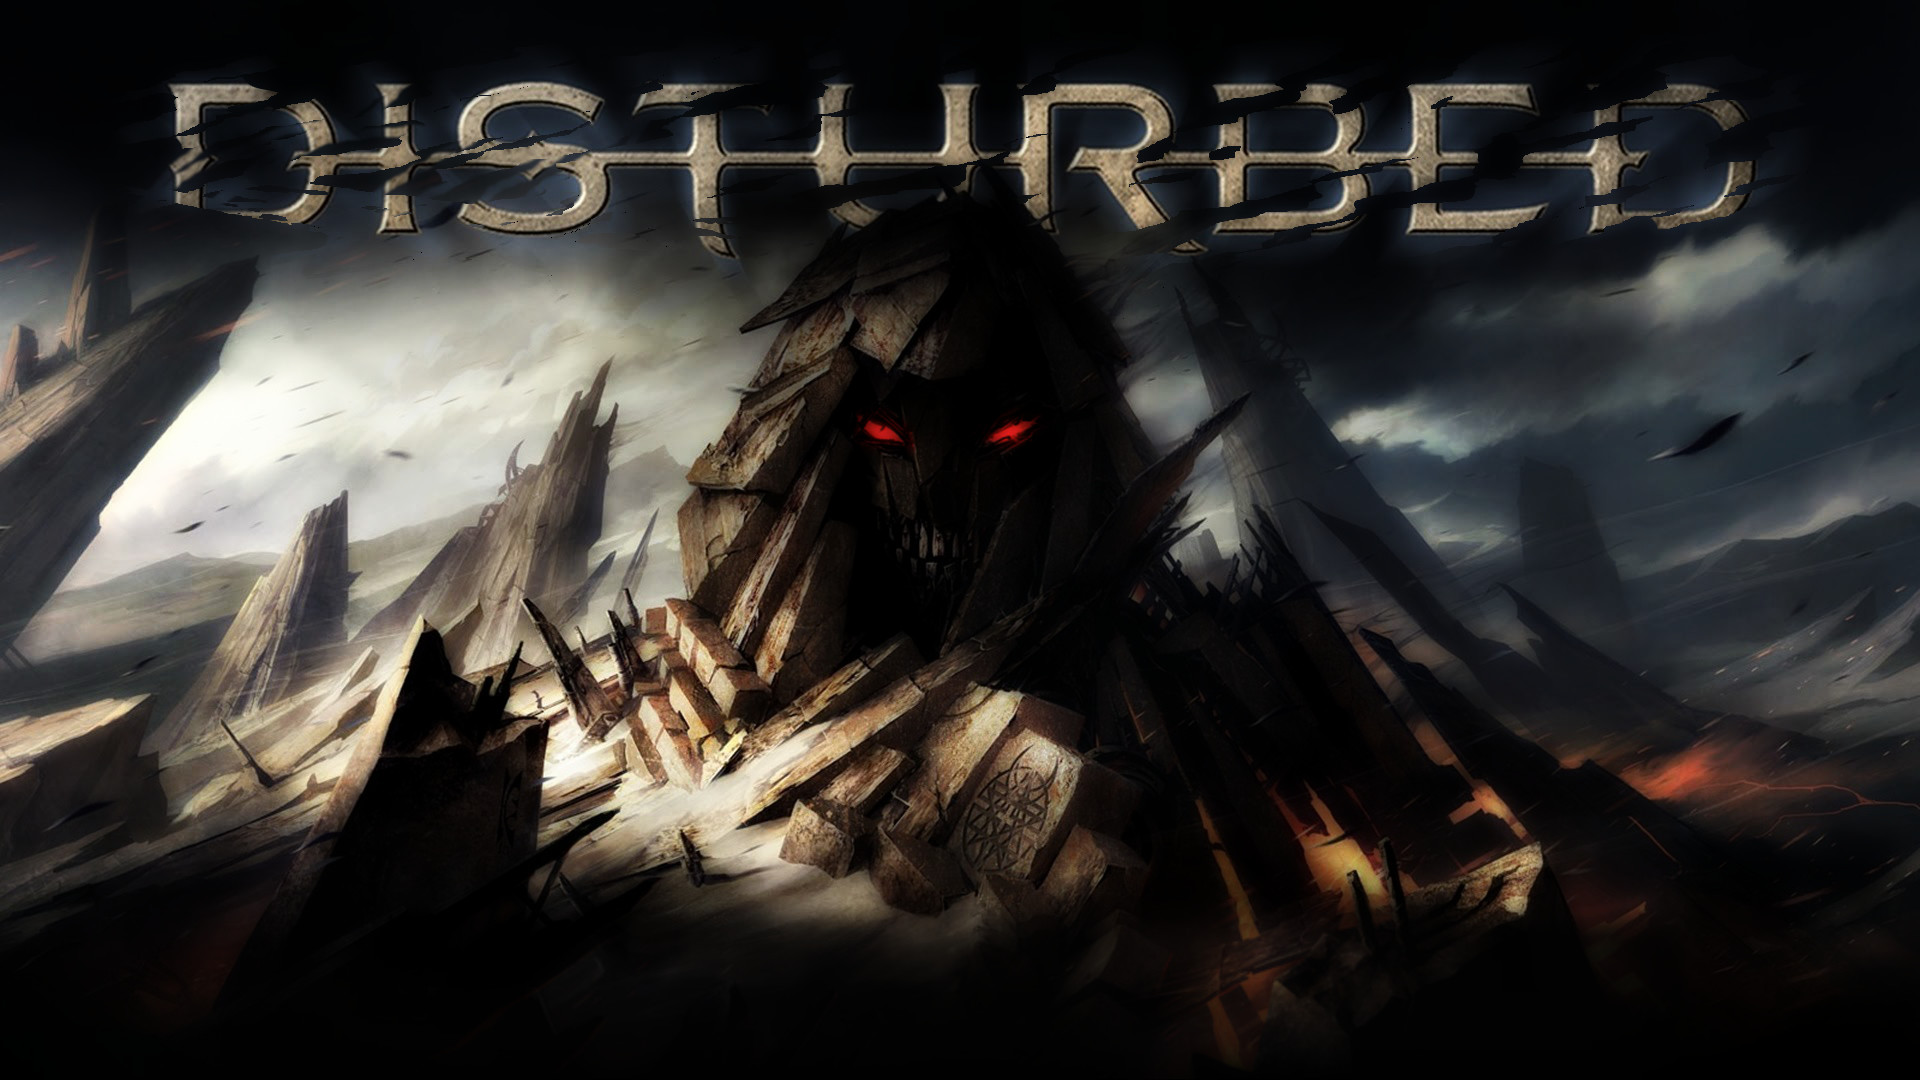 Res: 1920x1080, Disturbed Logo Wallpaper For Iphone